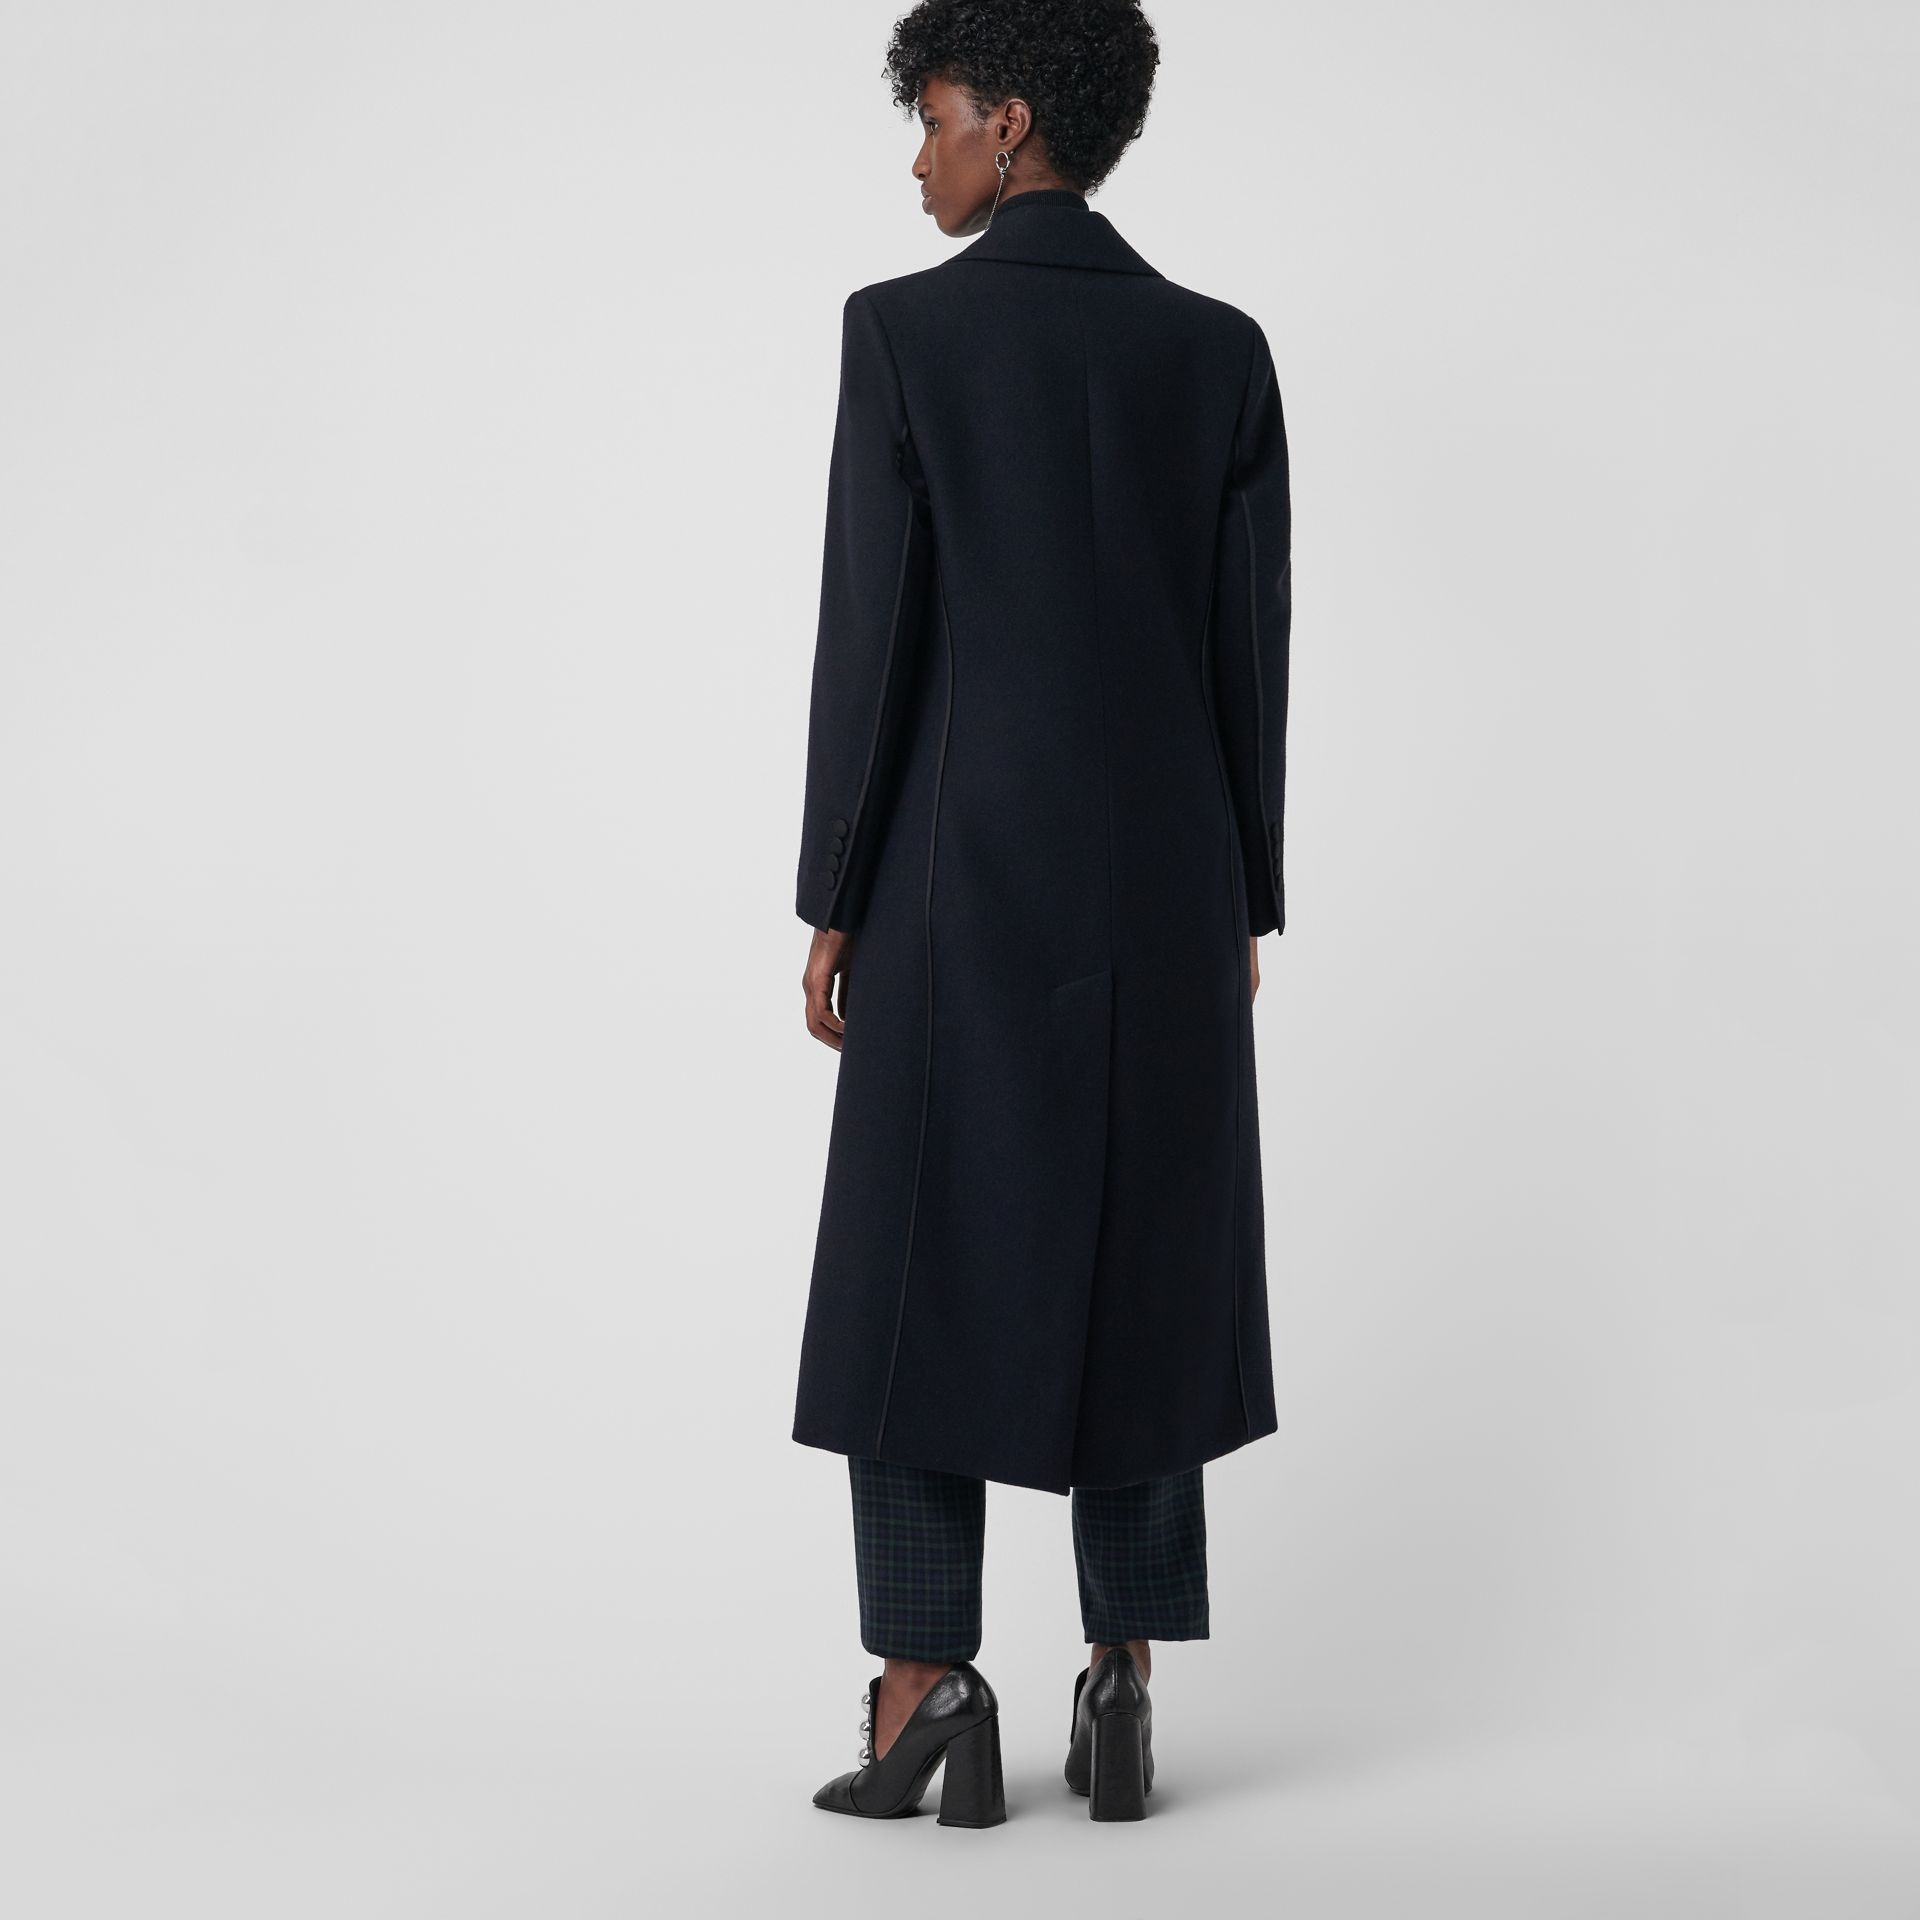 Cashmere Tailored Coat in Navy - Women | Burberry United States - gallery image 2